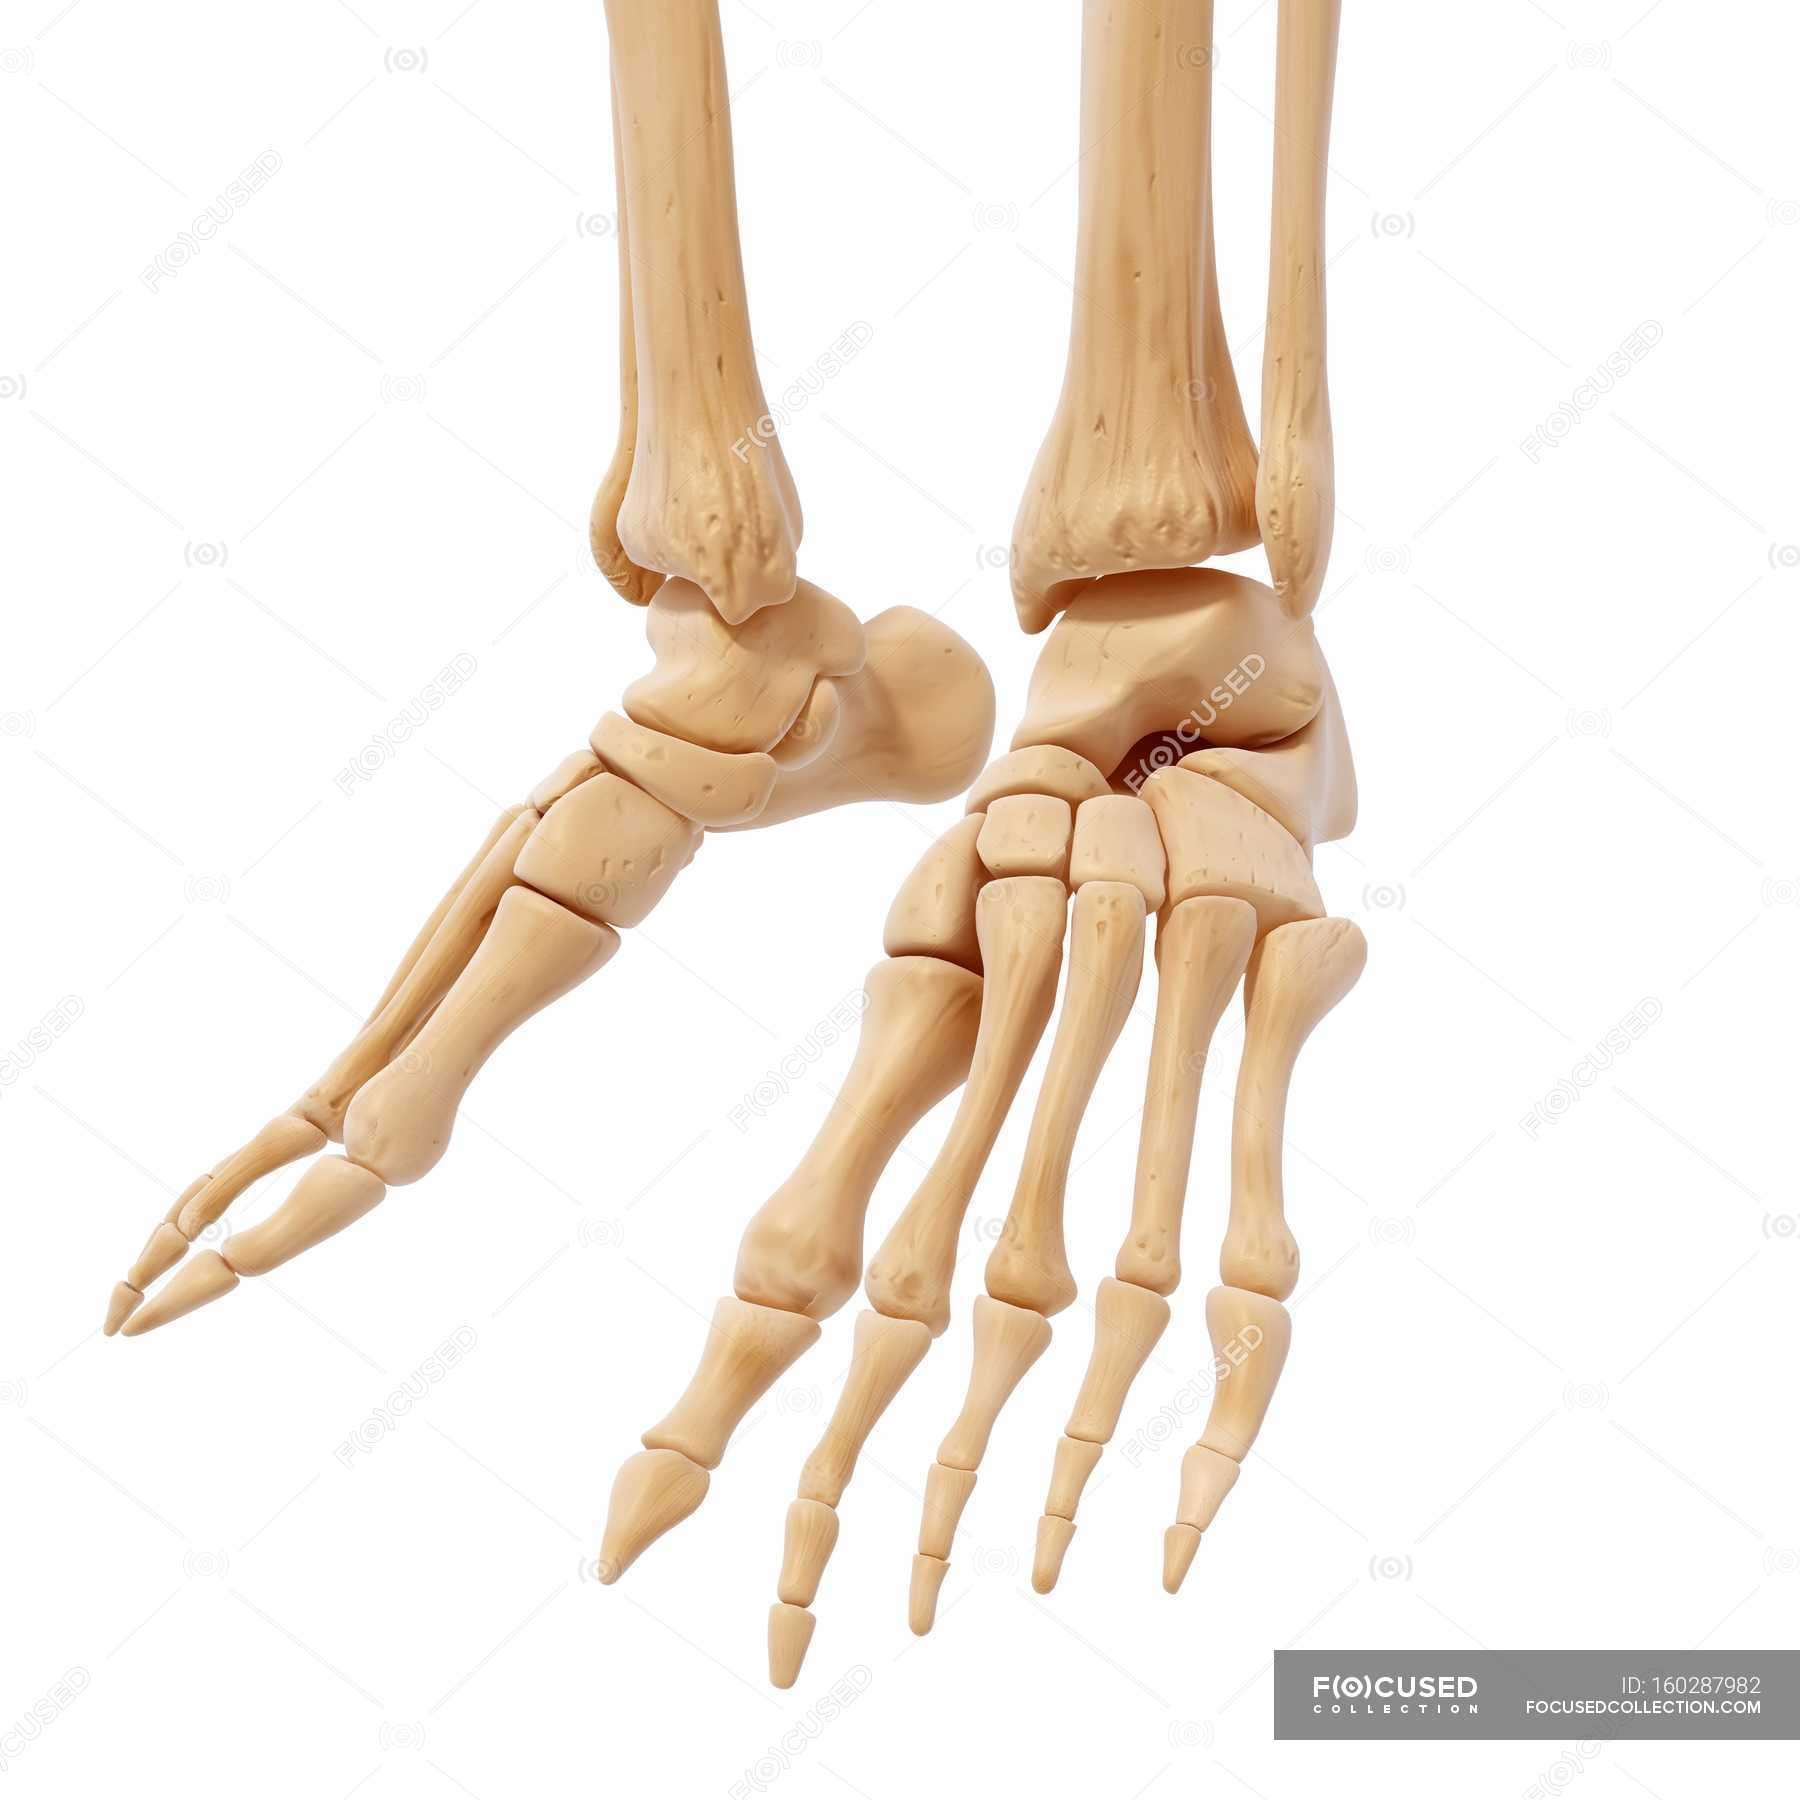 Human foot bones structural anatomy — Stock Photo | #160287982